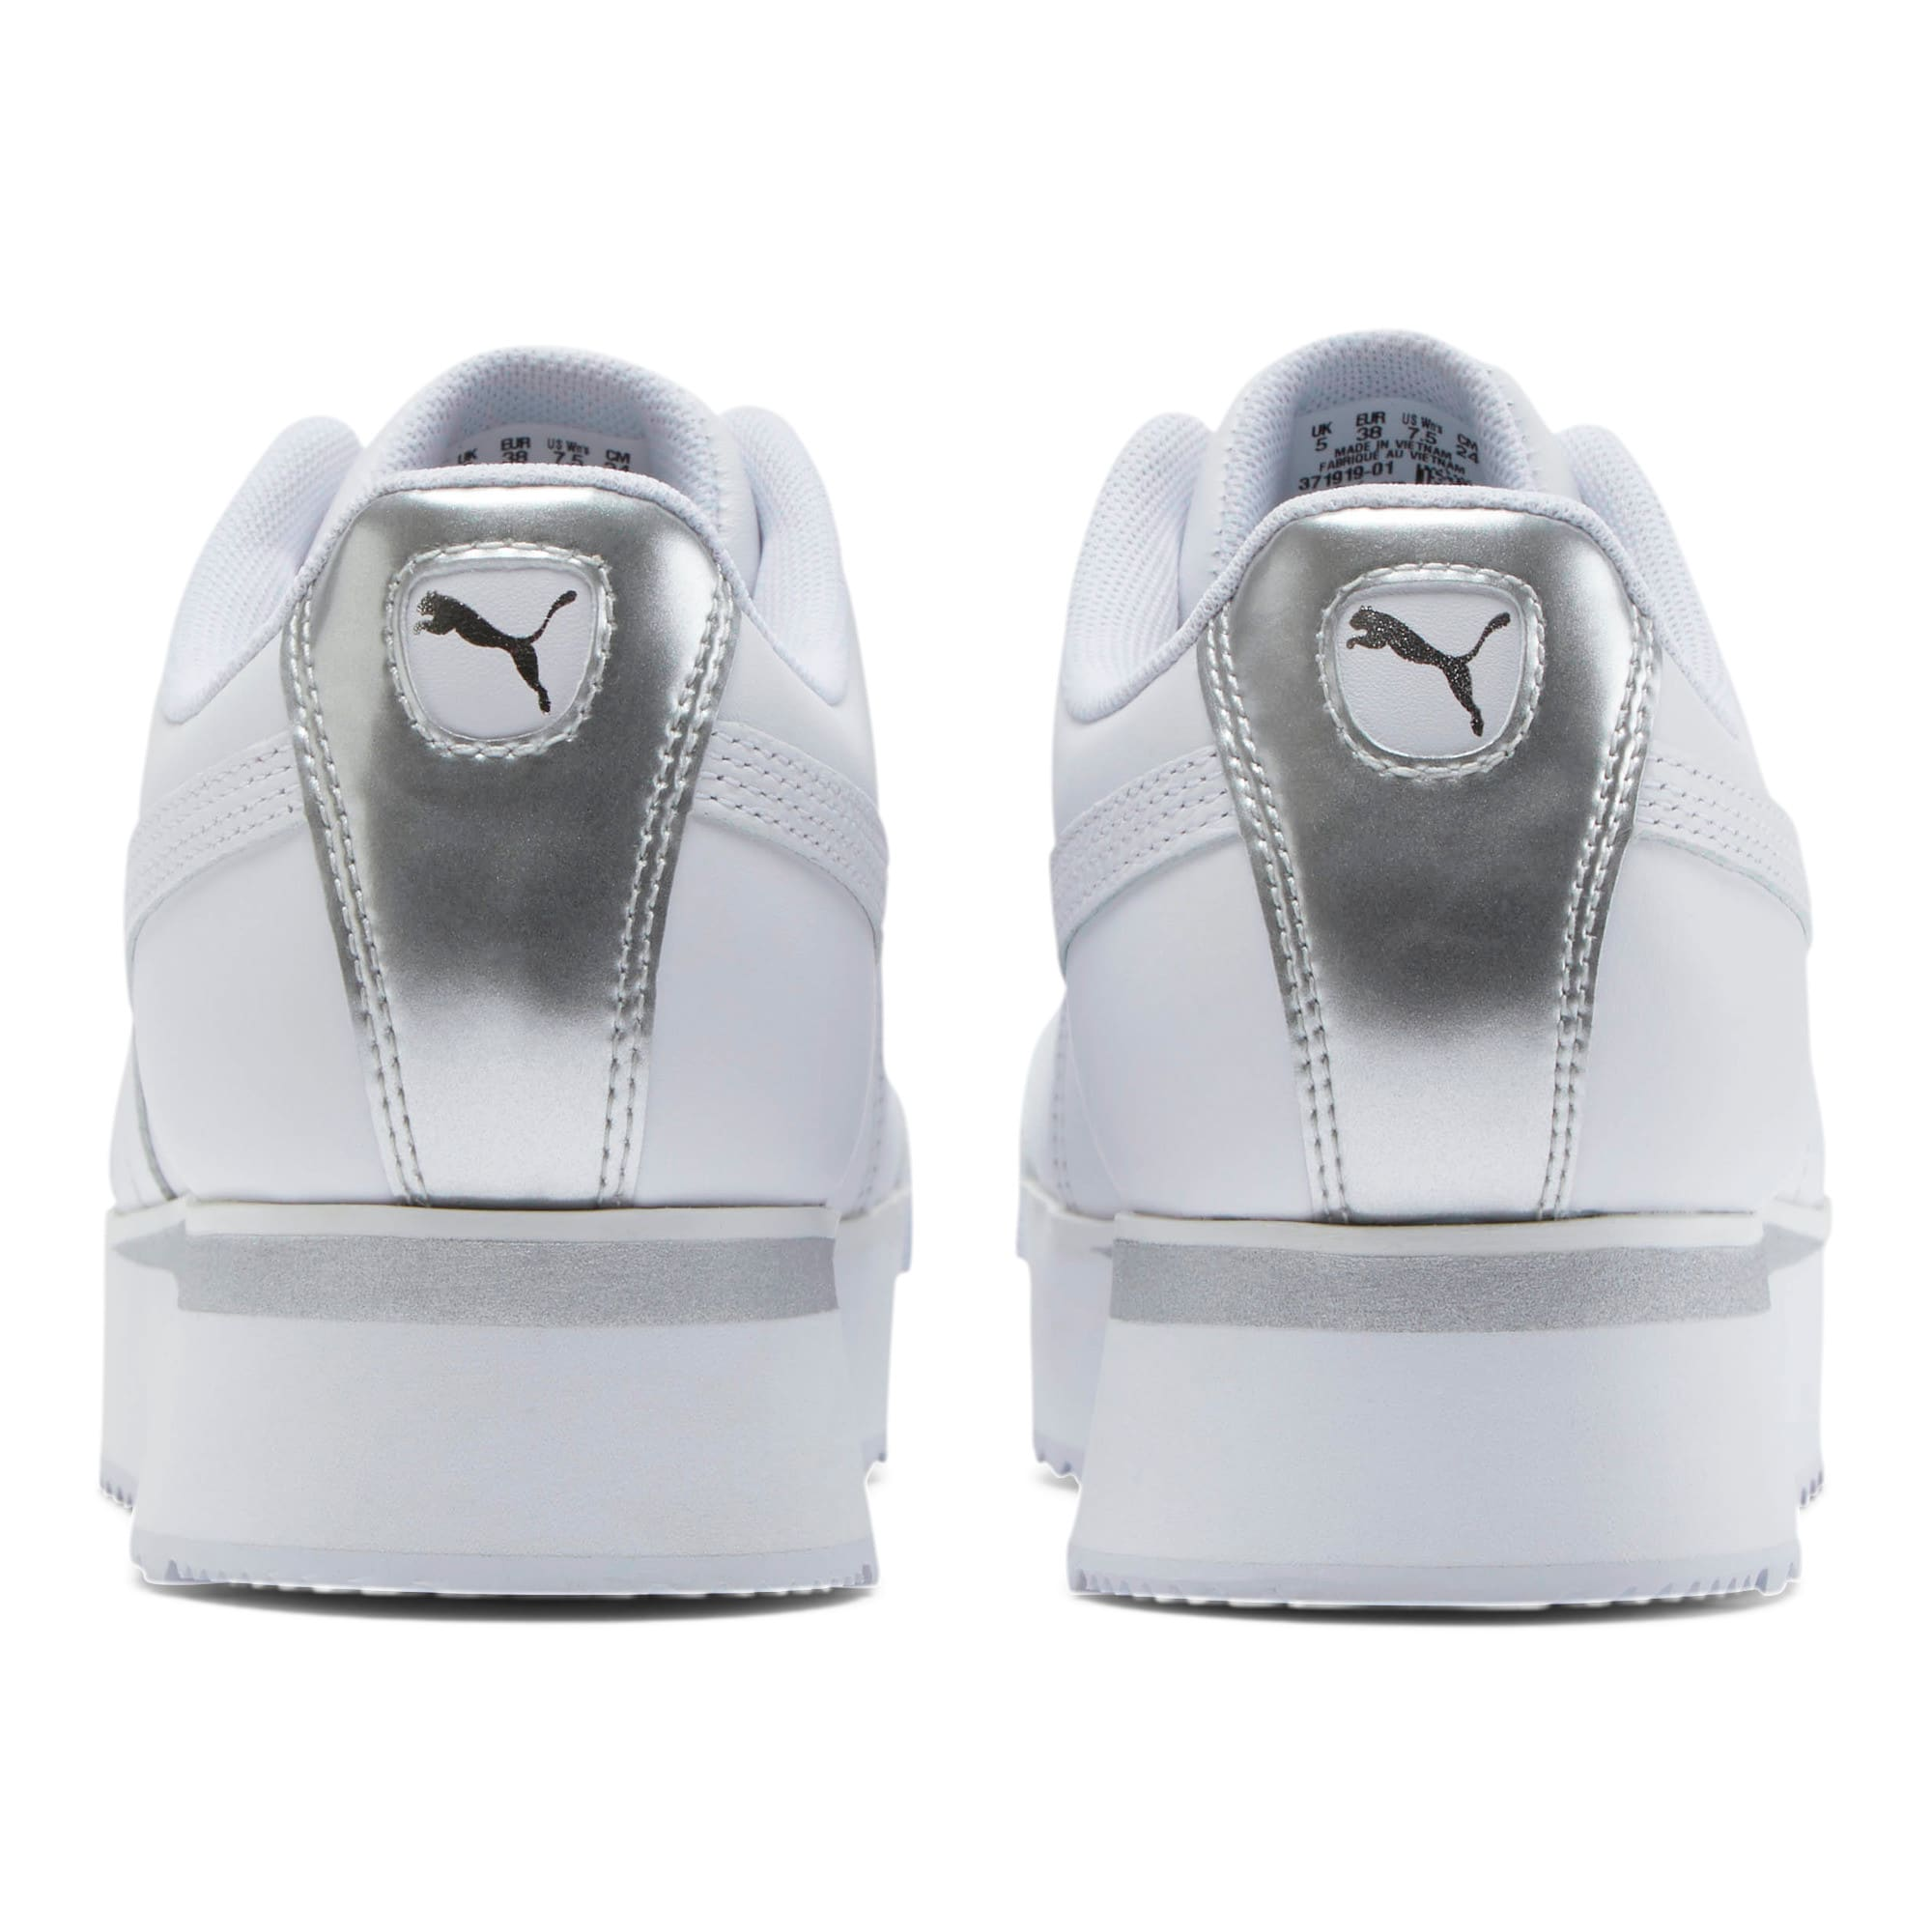 Thumbnail 3 of Roma Amor Leather Metallic Women's Sneakers, White-Whisper White-Silver, medium